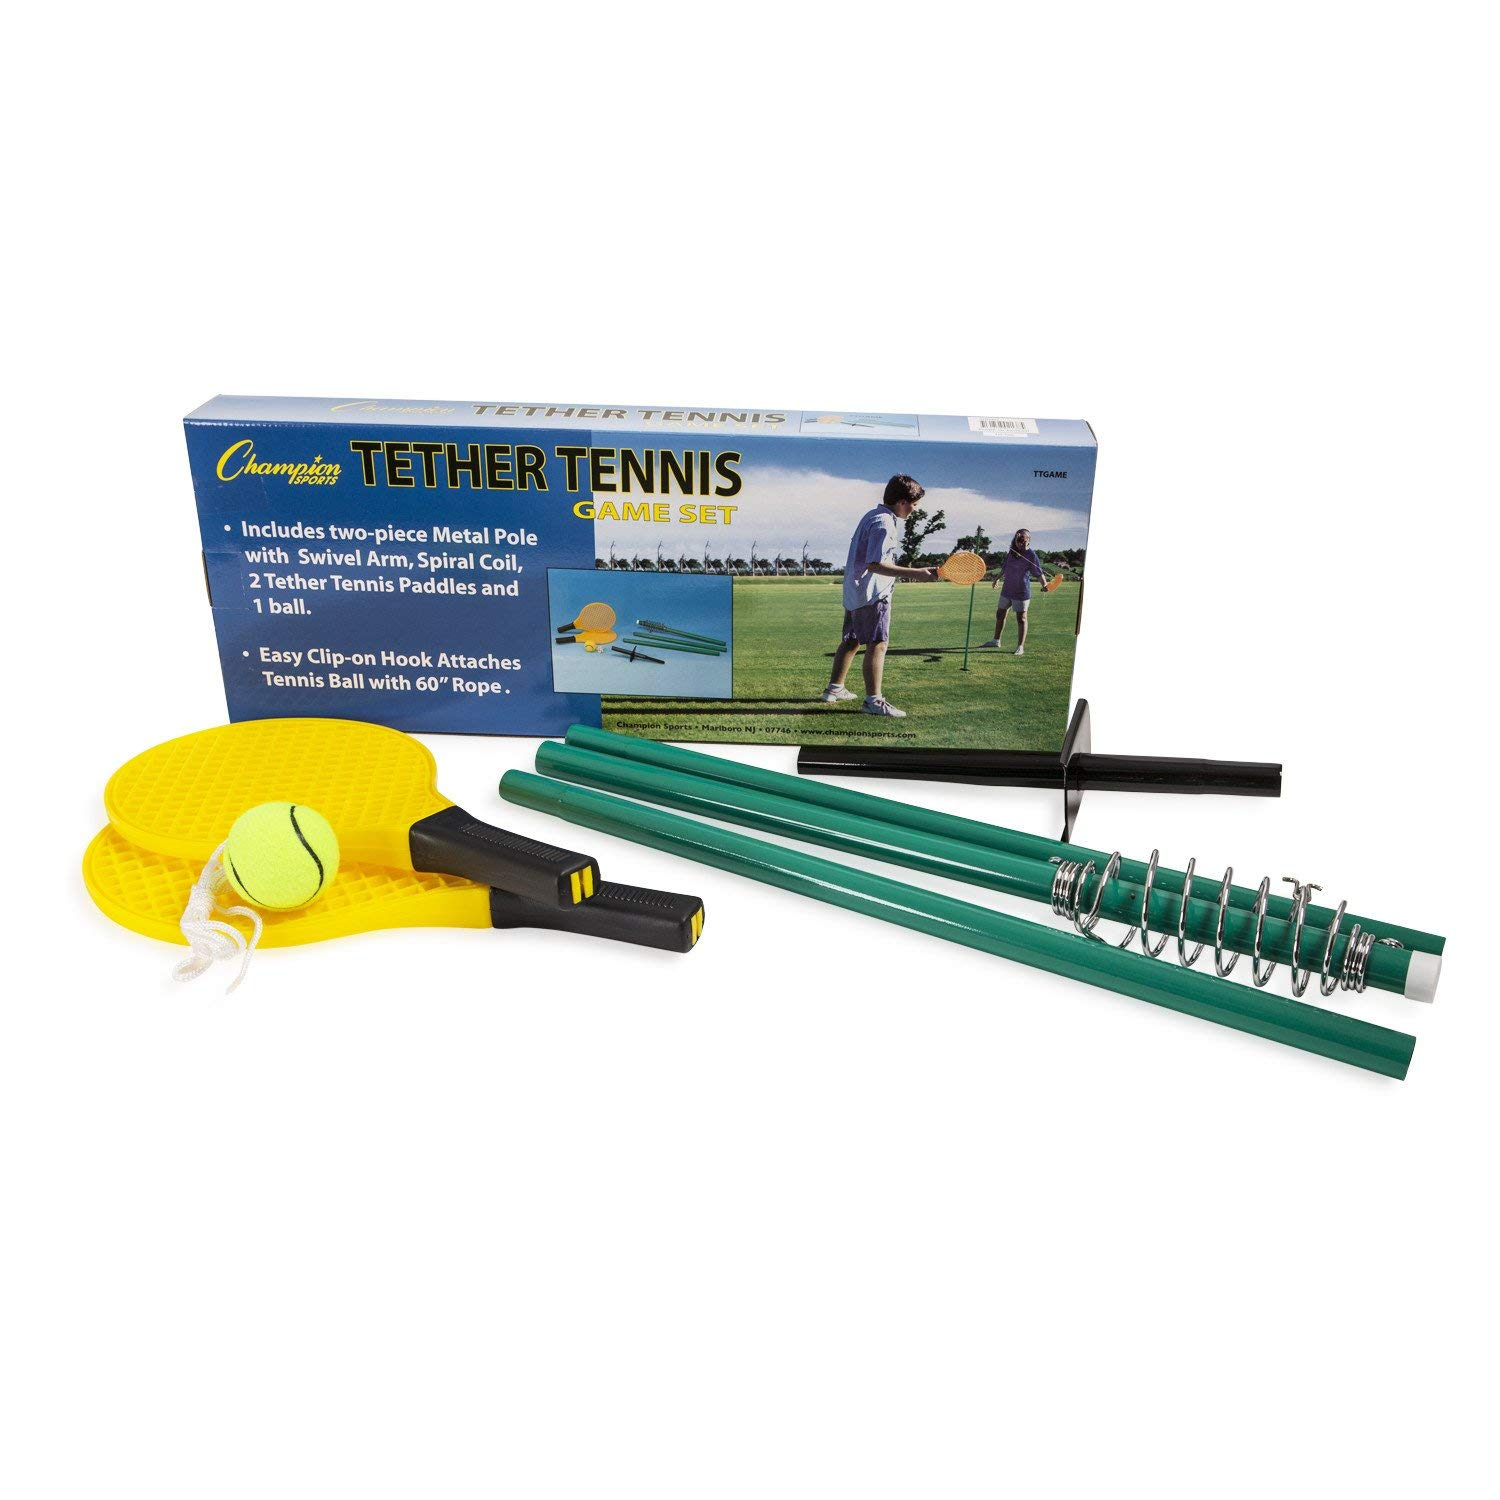 Champion Sports TTGAME Tetherball Tennis: Swingball Outdoor Lawn Game for Kids, Adults, and Families - Backyard Tether Kit with Tennis Ball and Paddle Set (Renewed) by Champion Sports